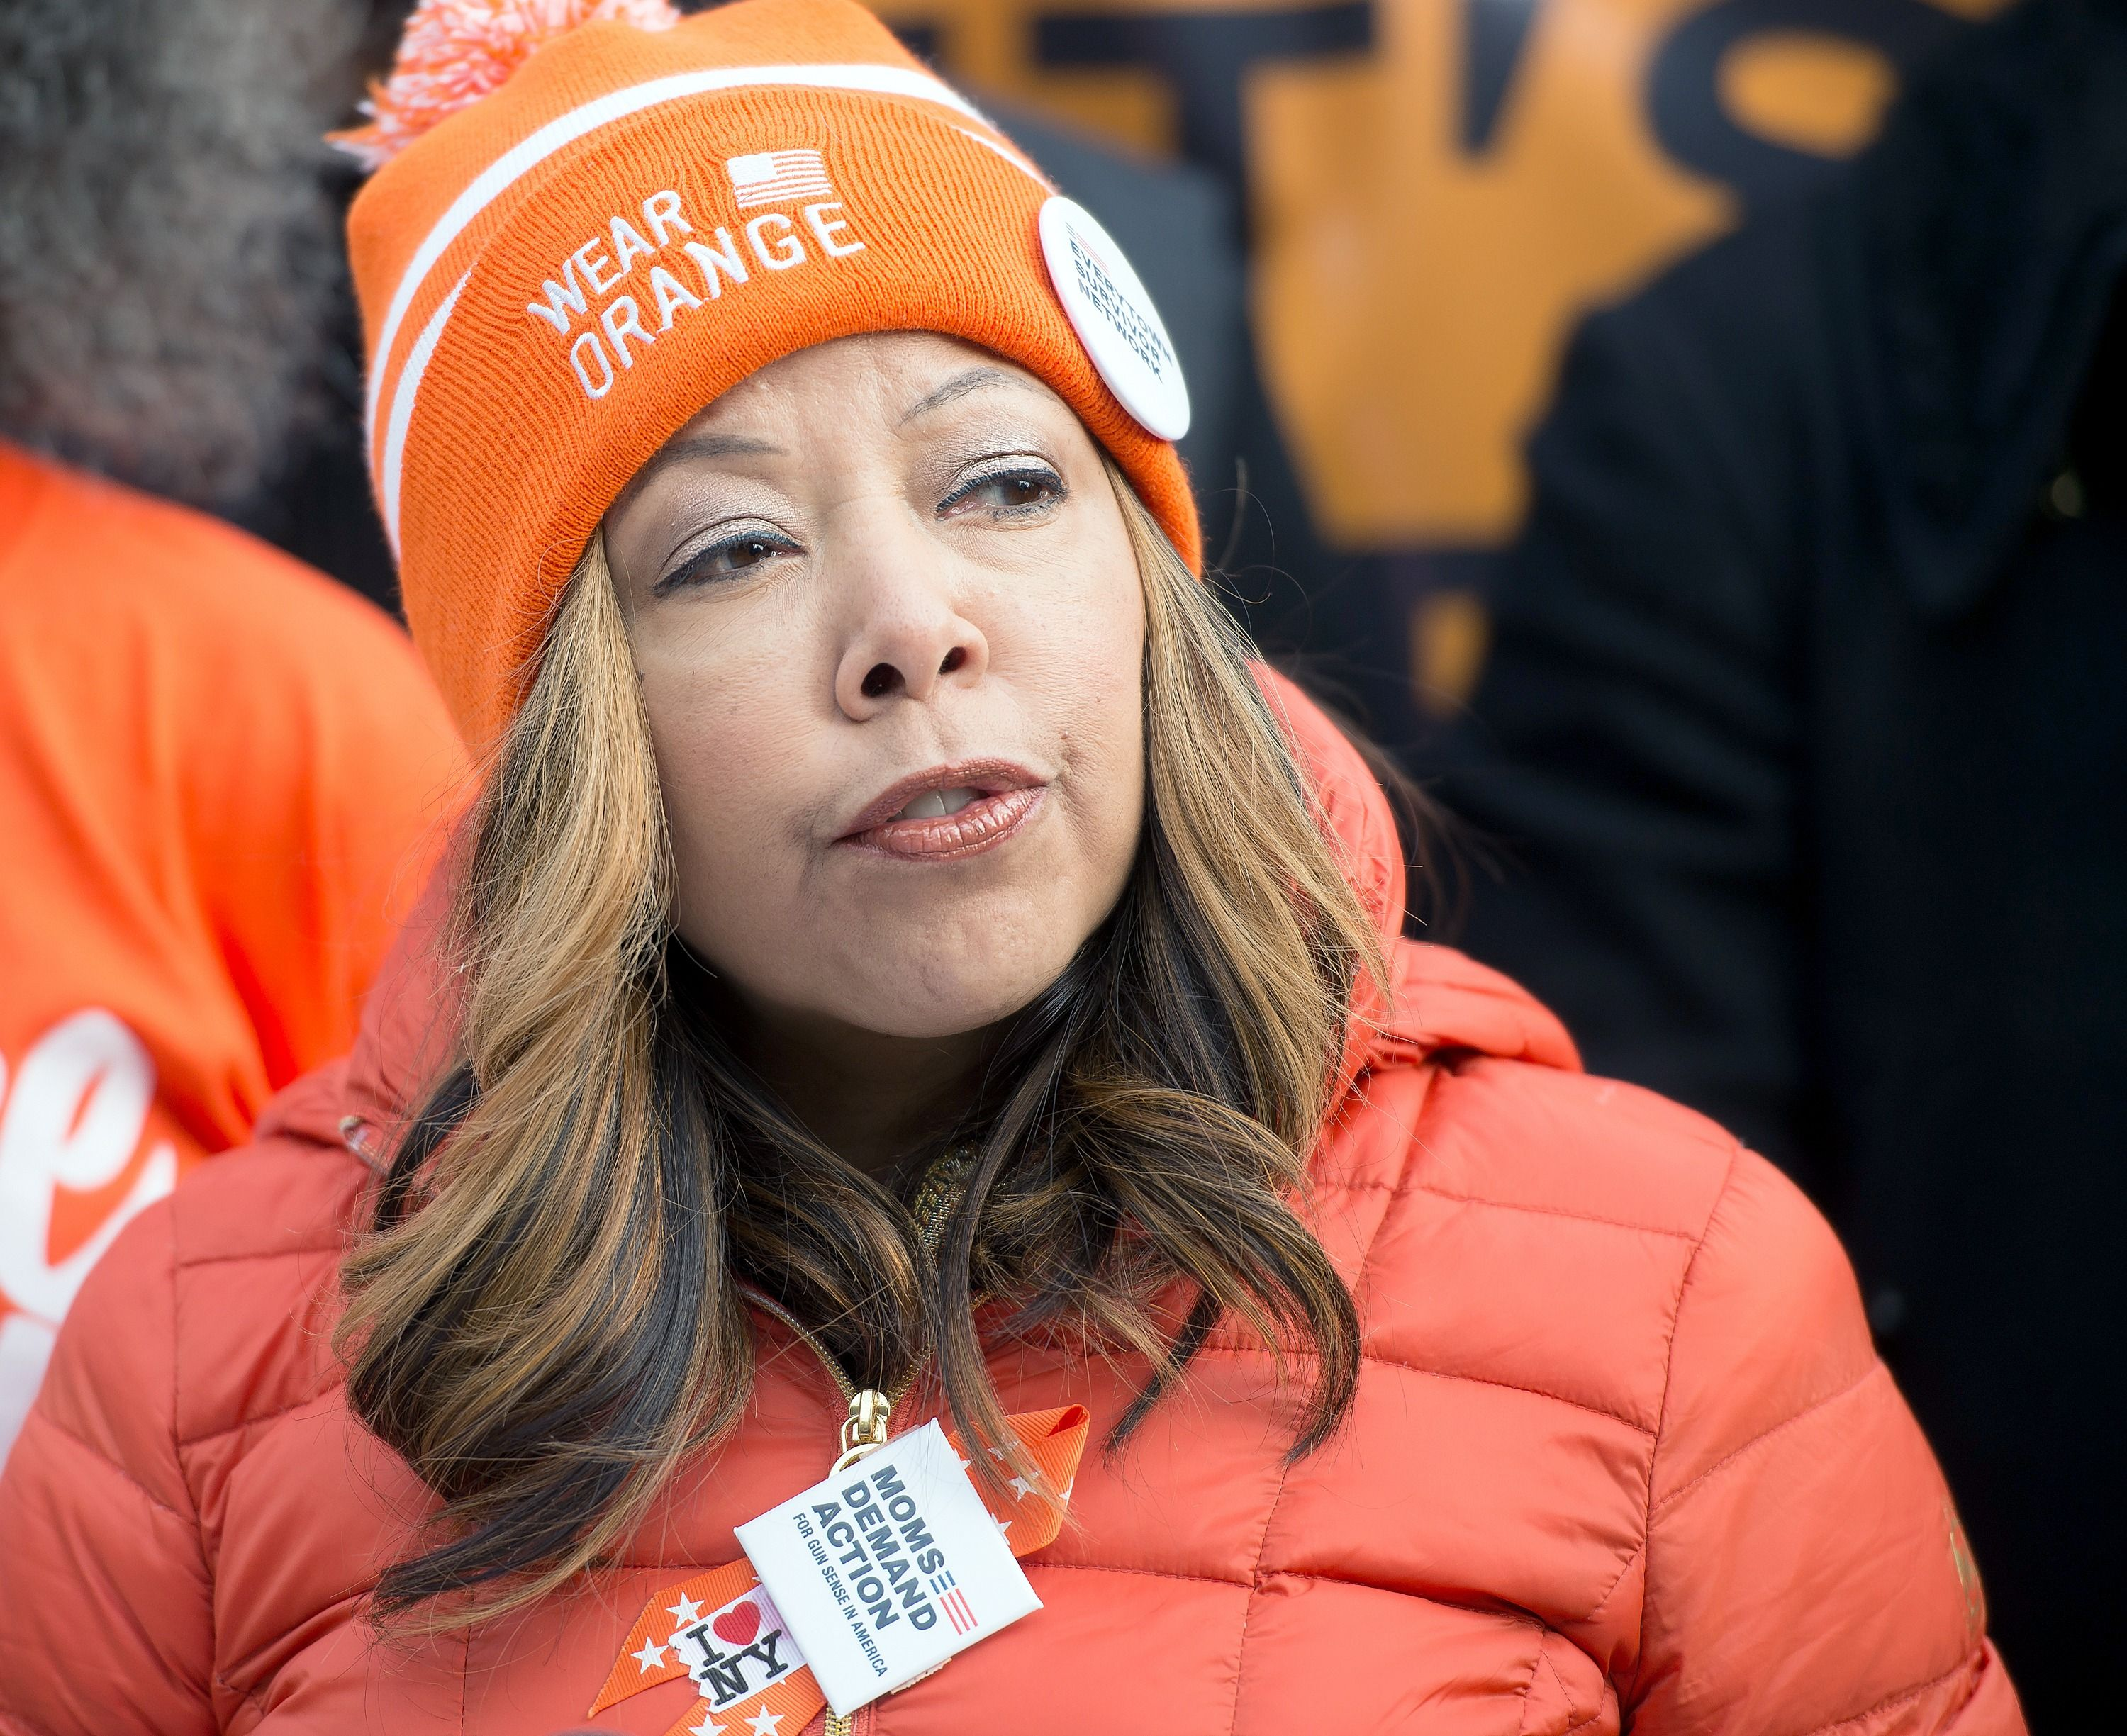 176db6b0ee89f lucy-mcbath-speaks-during-the-6th-annual-new-york-peace-news-photo-505153430-1541528827.jpg